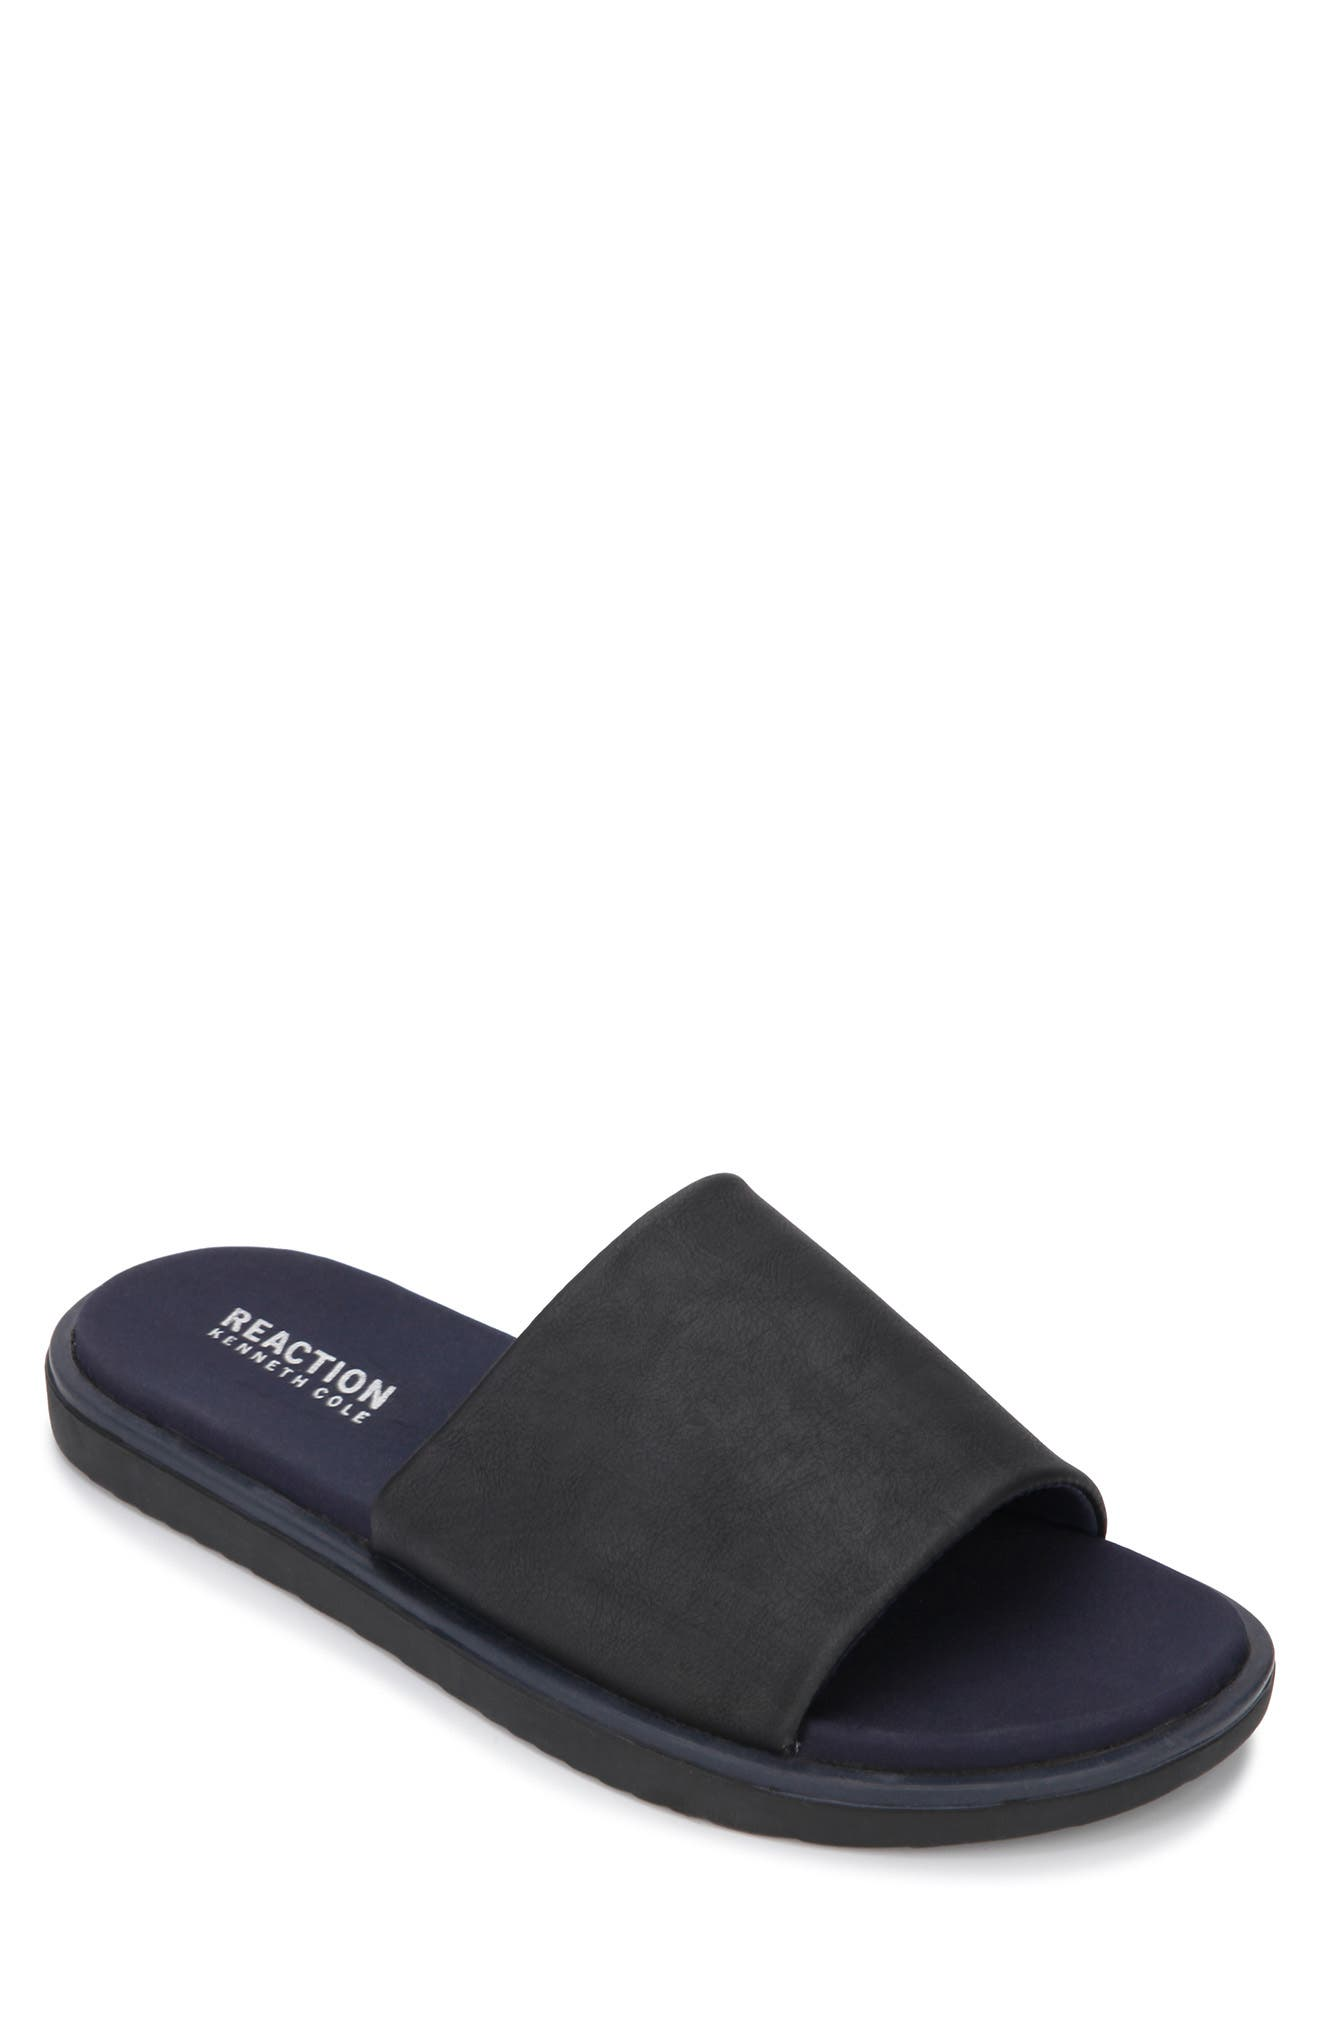 Image of Kenneth Cole Reaction Abner Slide Sandal